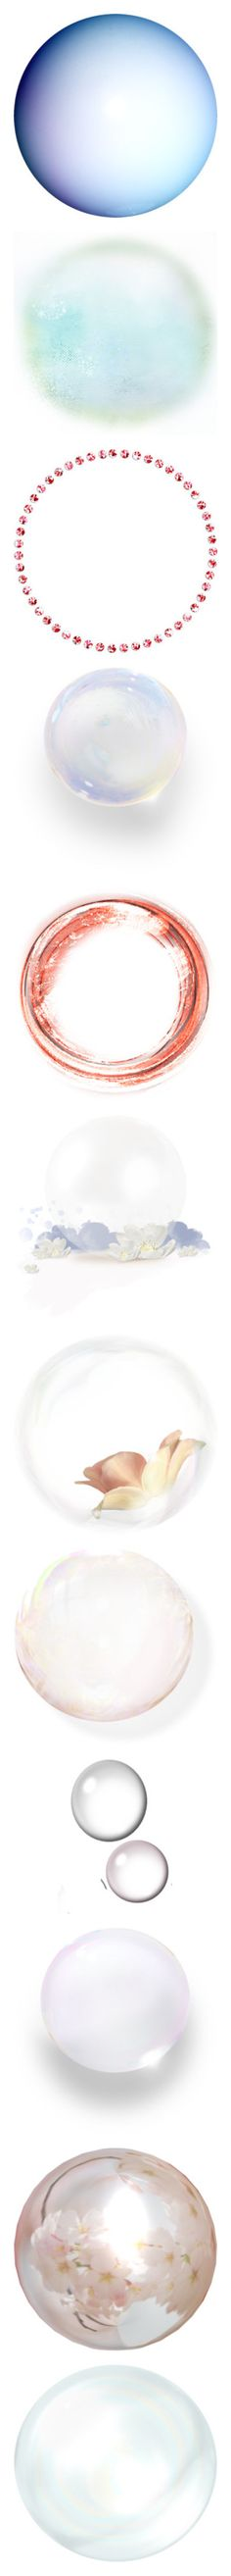 """""""Circles 1"""" by timianam ❤ liked on Polyvore featuring circle, round, borders, circular, picture frame, backgrounds, circles, blue, filler and frames"""